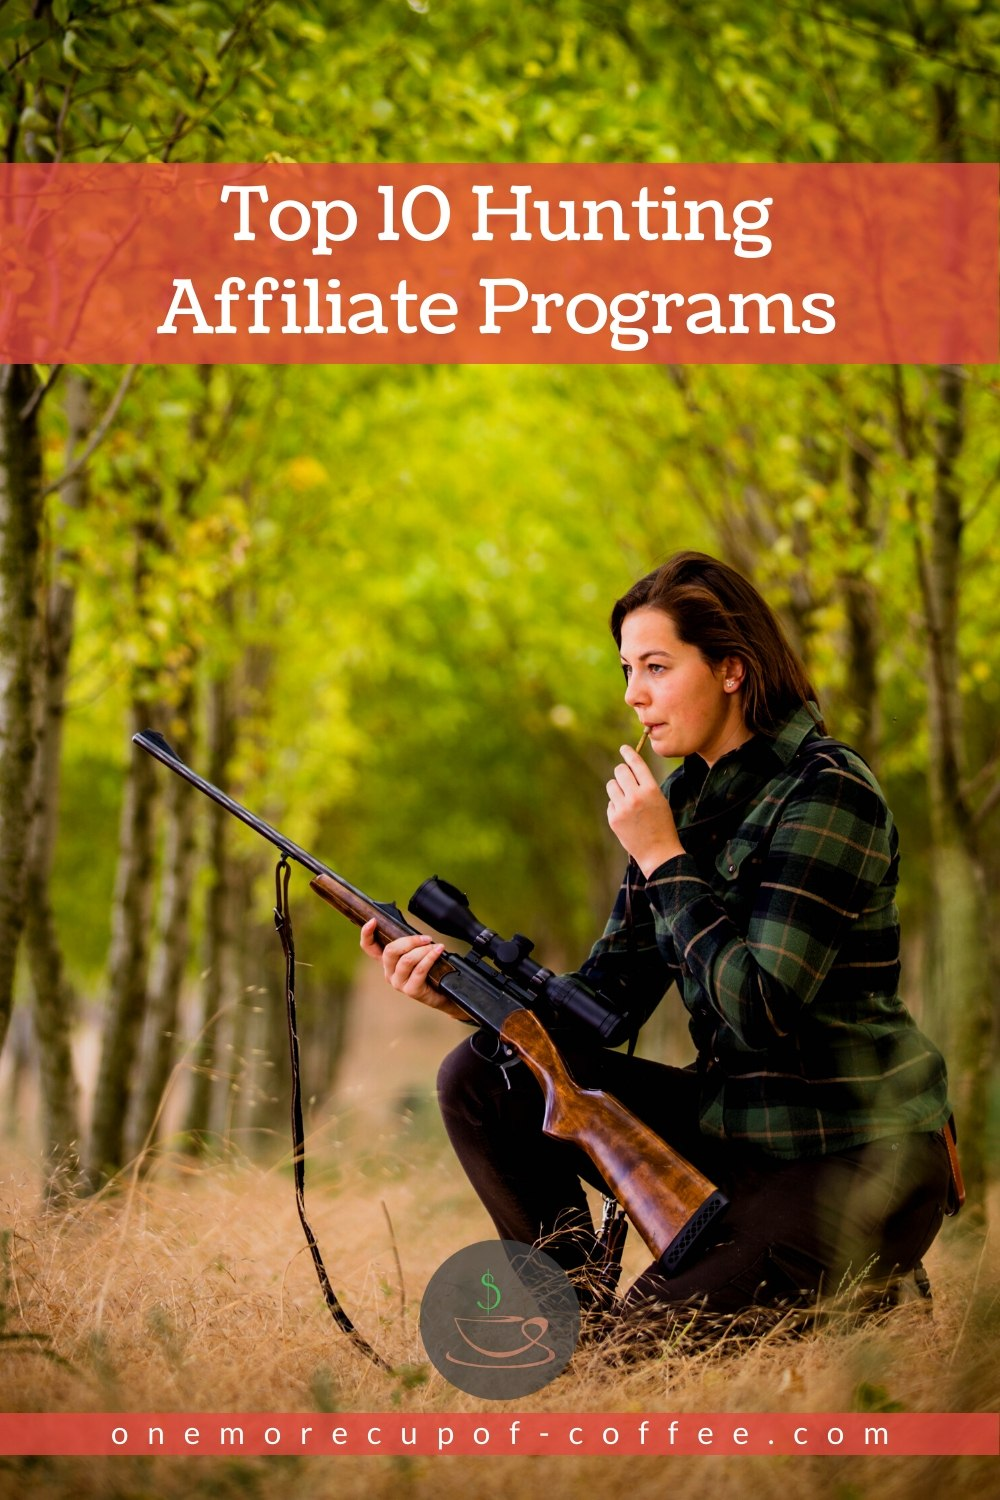 """woman with hunting gun and whistle, with text overlay """"Top 10 Hunting Affiliate Programs"""""""